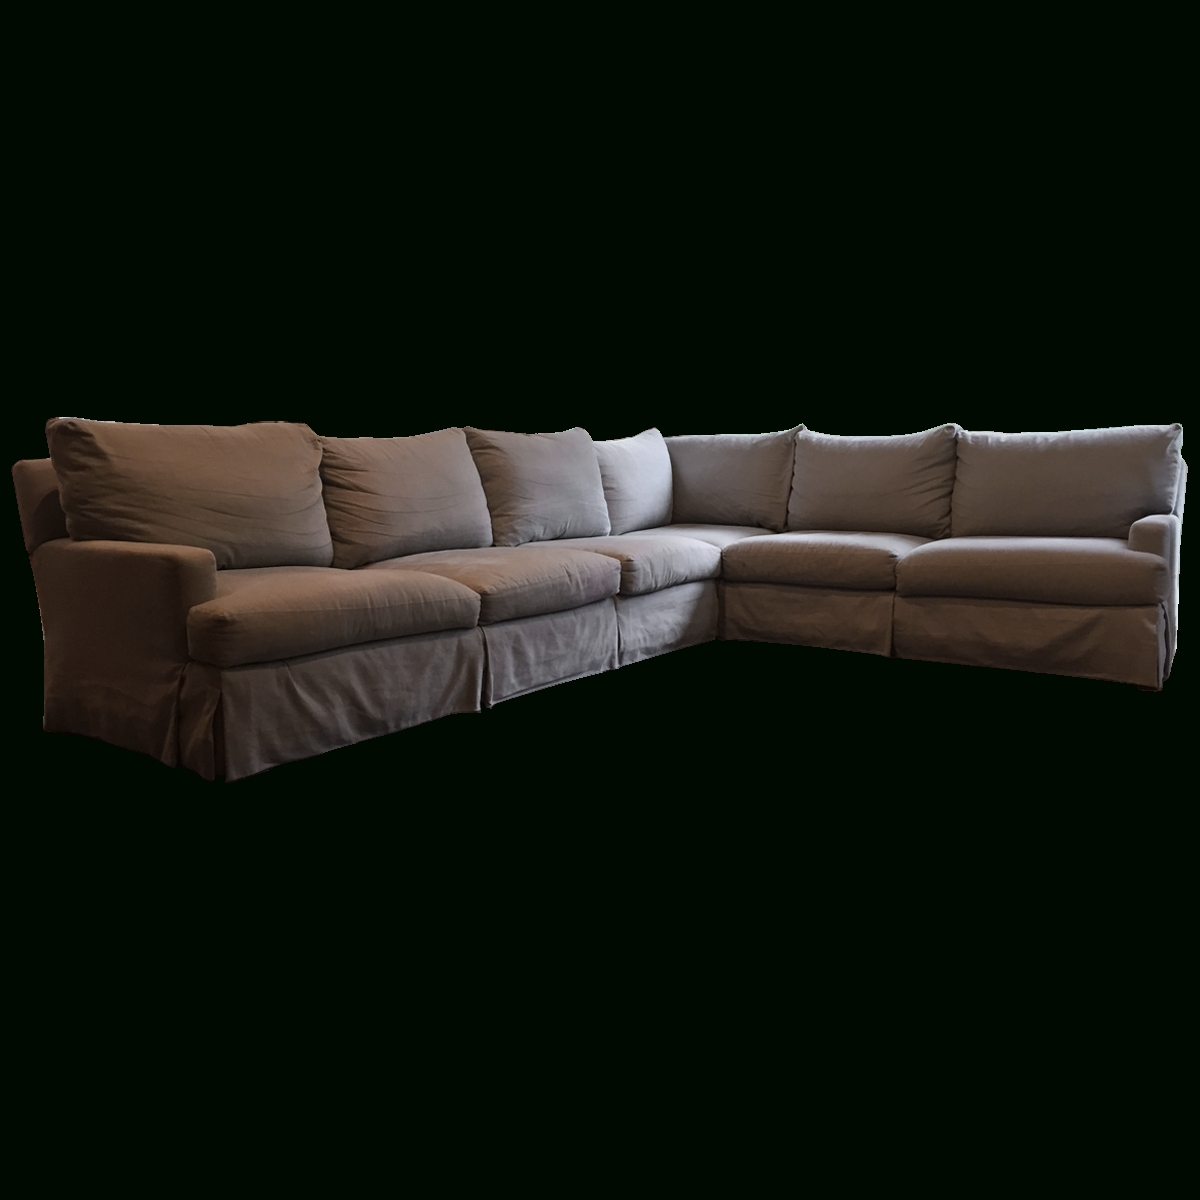 Lee Industries Sectional Sofas Throughout Well Known Viyet – Designer Furniture – Seating – Lee Industries Linen Blend (View 11 of 15)